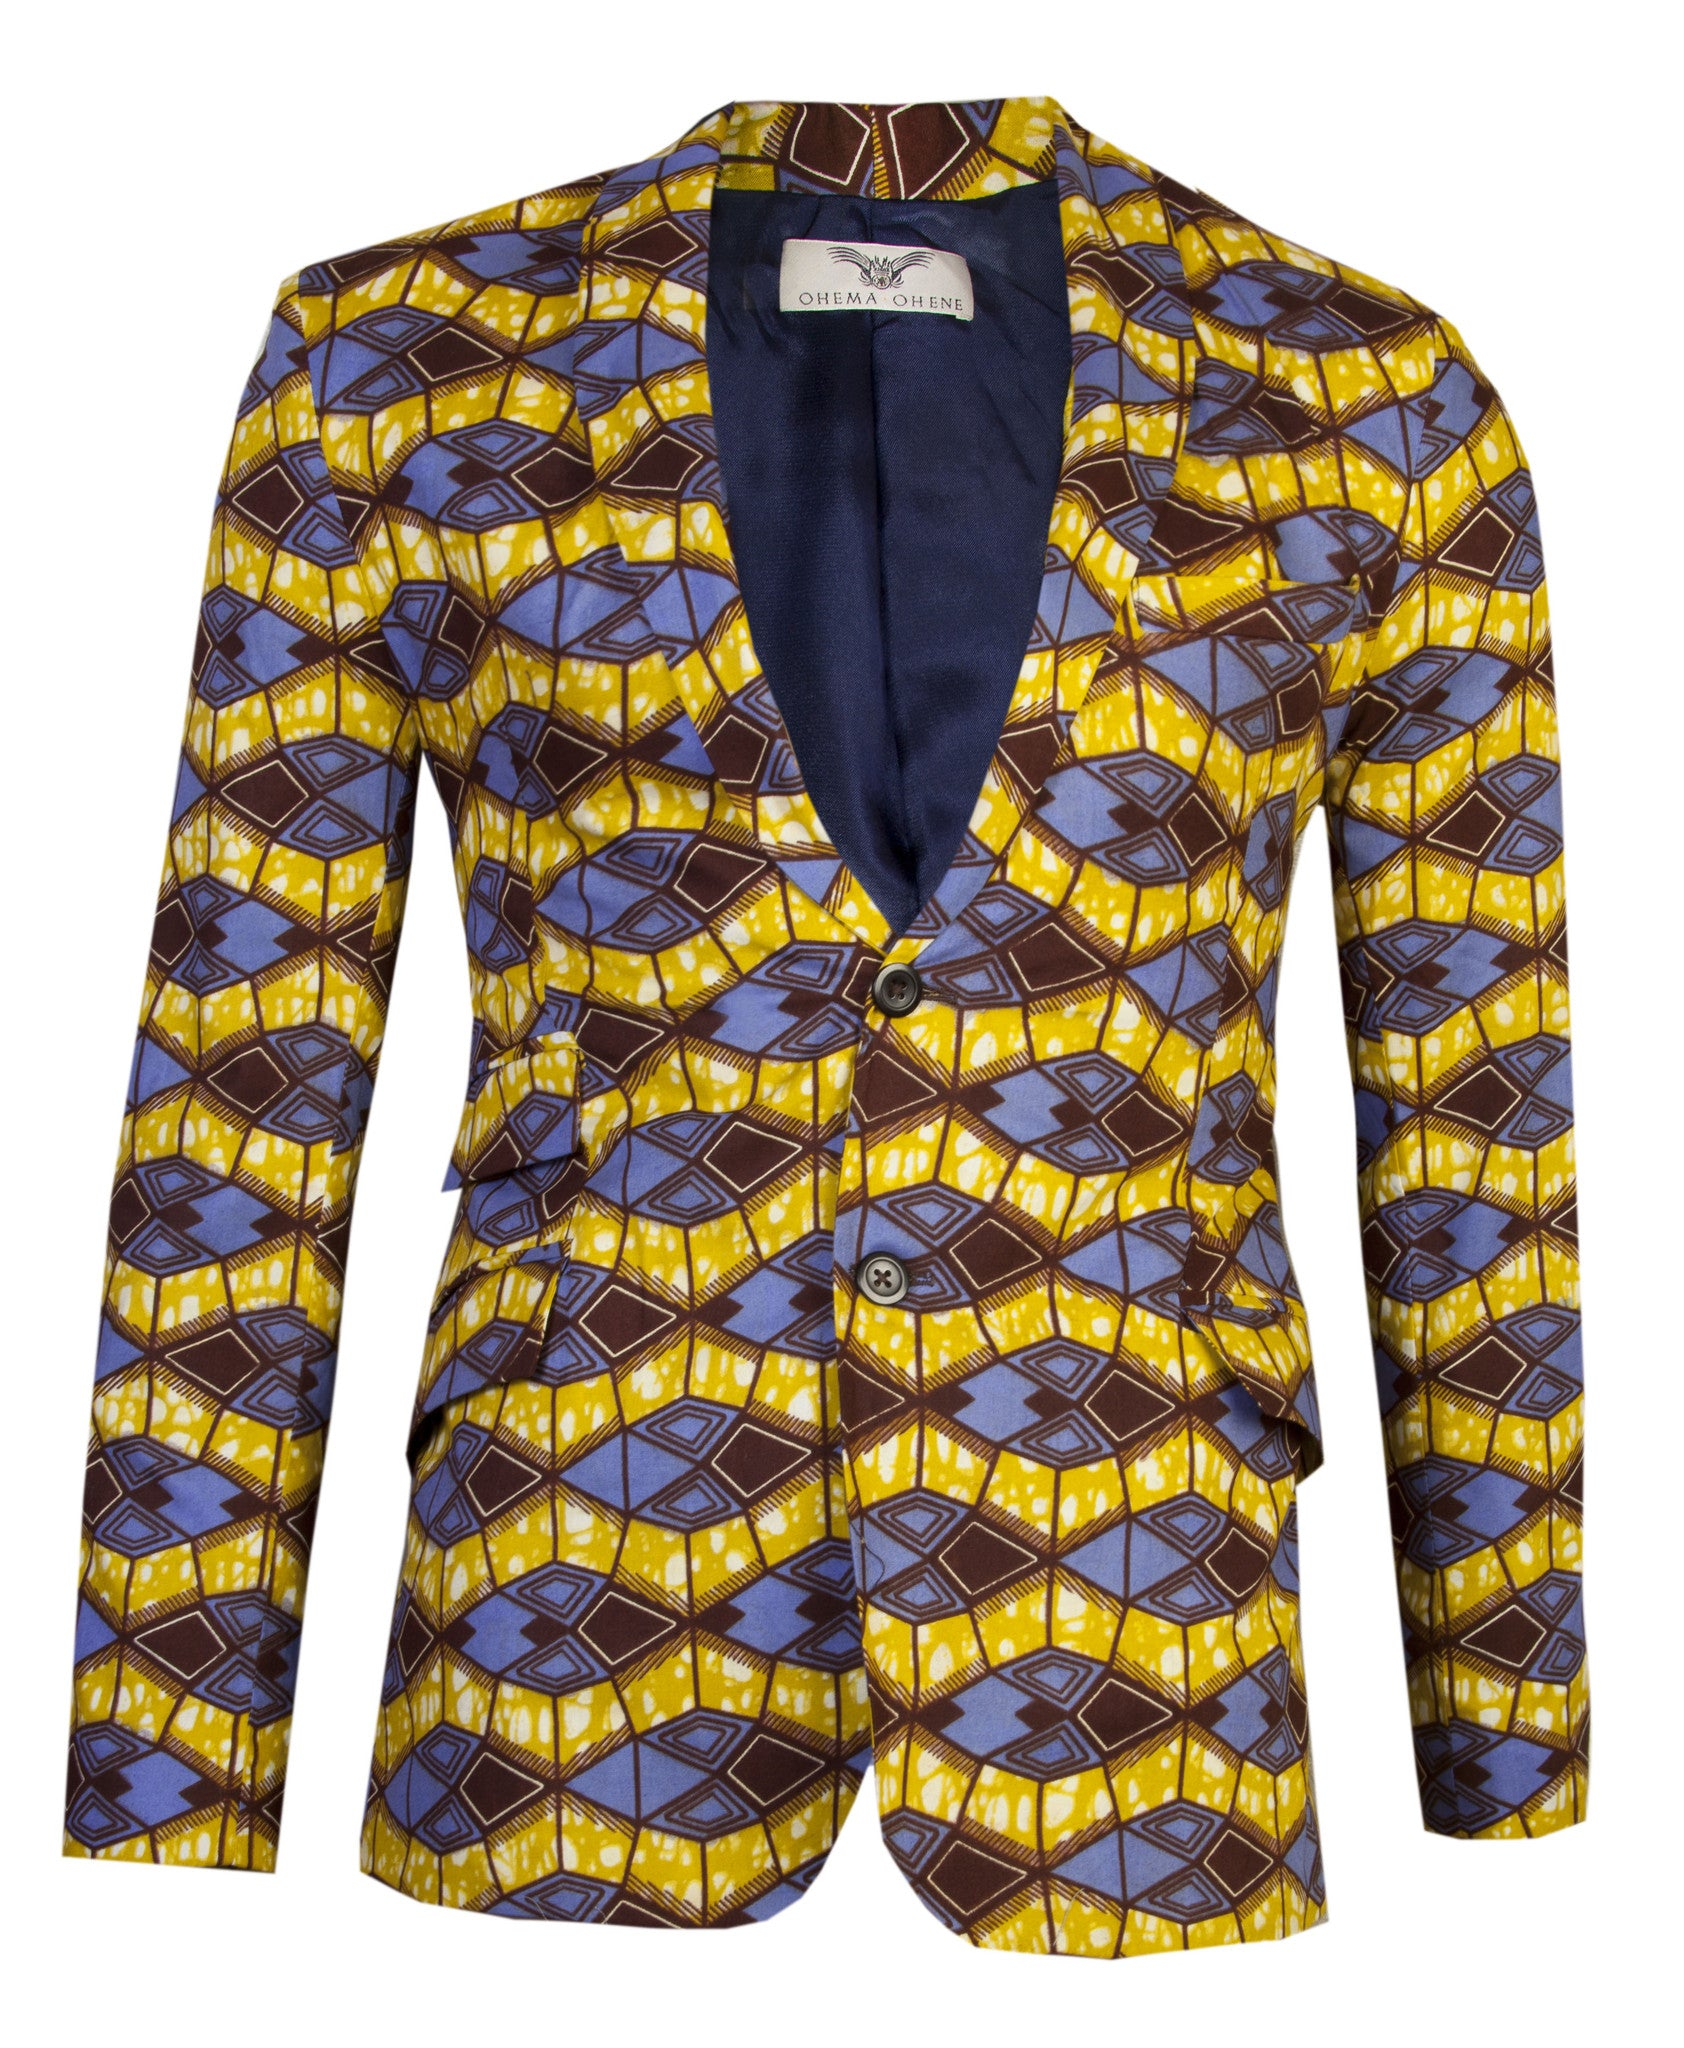 Joshua 2 button African print blazer 'Azzme' - OHEMA OHENE AFRICAN INSPIRED FASHION  - 1